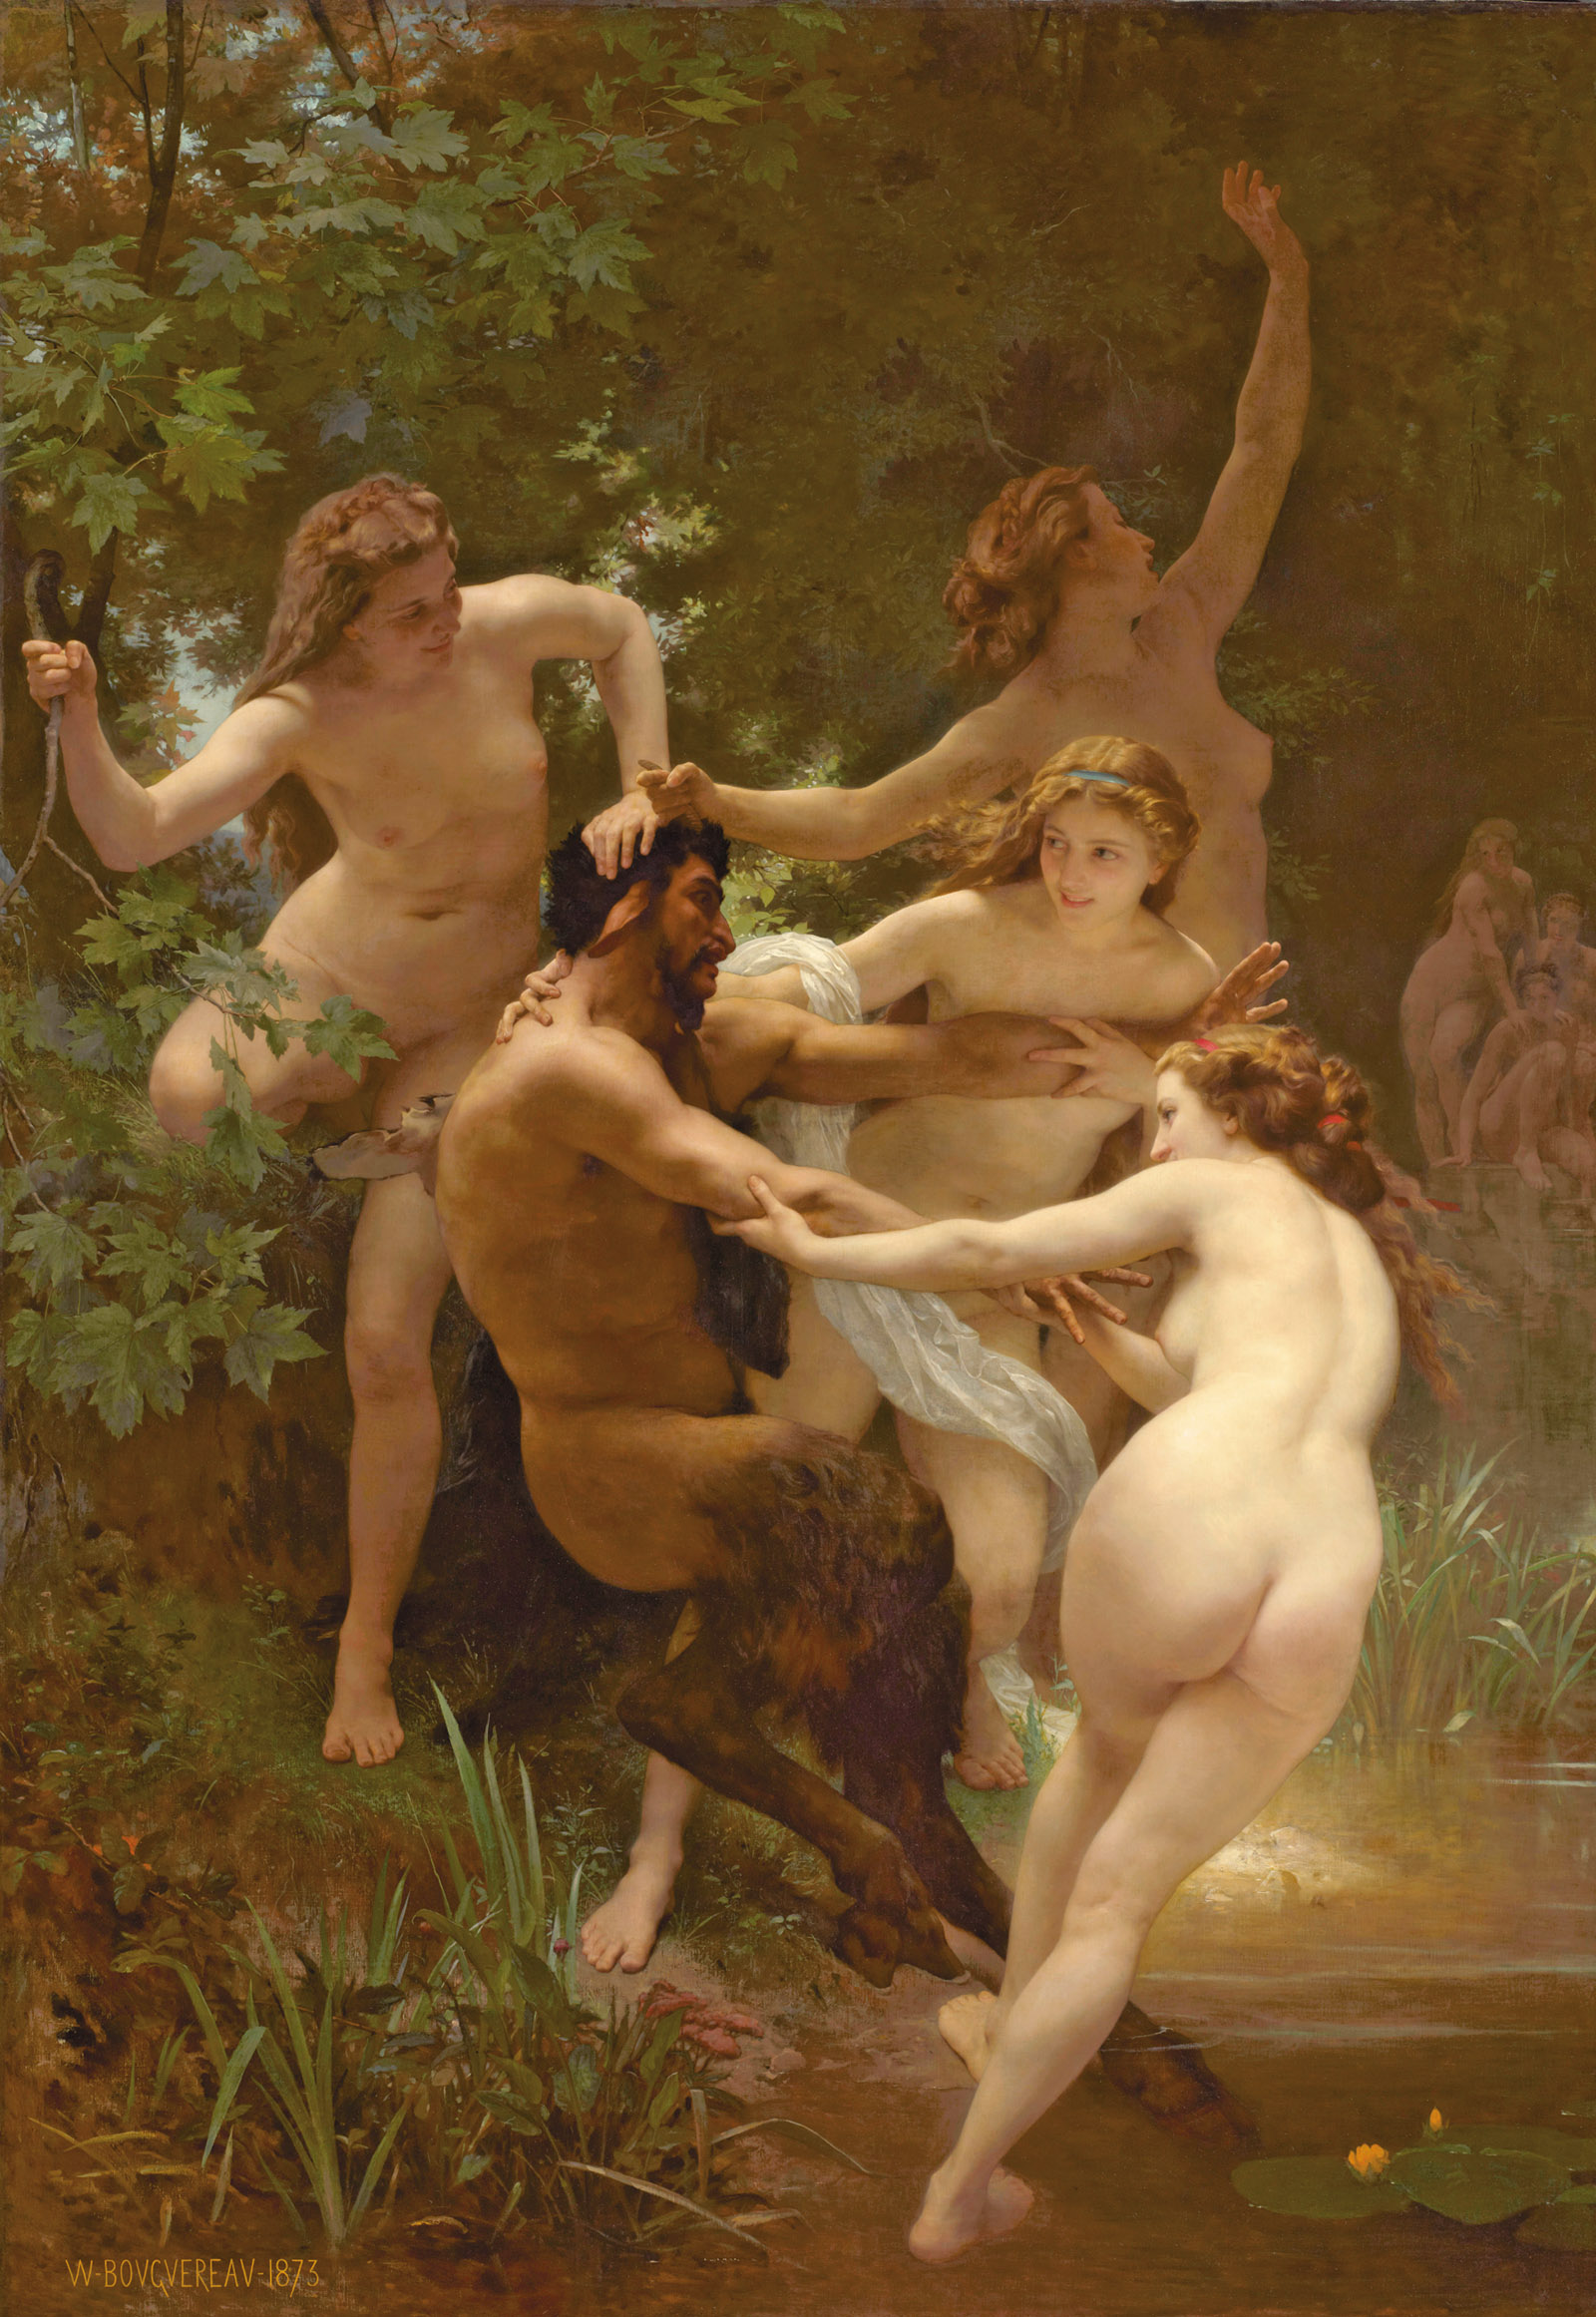 William-Adolphe Bouguereau: Nymphs and Satyr, 102 1/2 x 72 inches, 1873